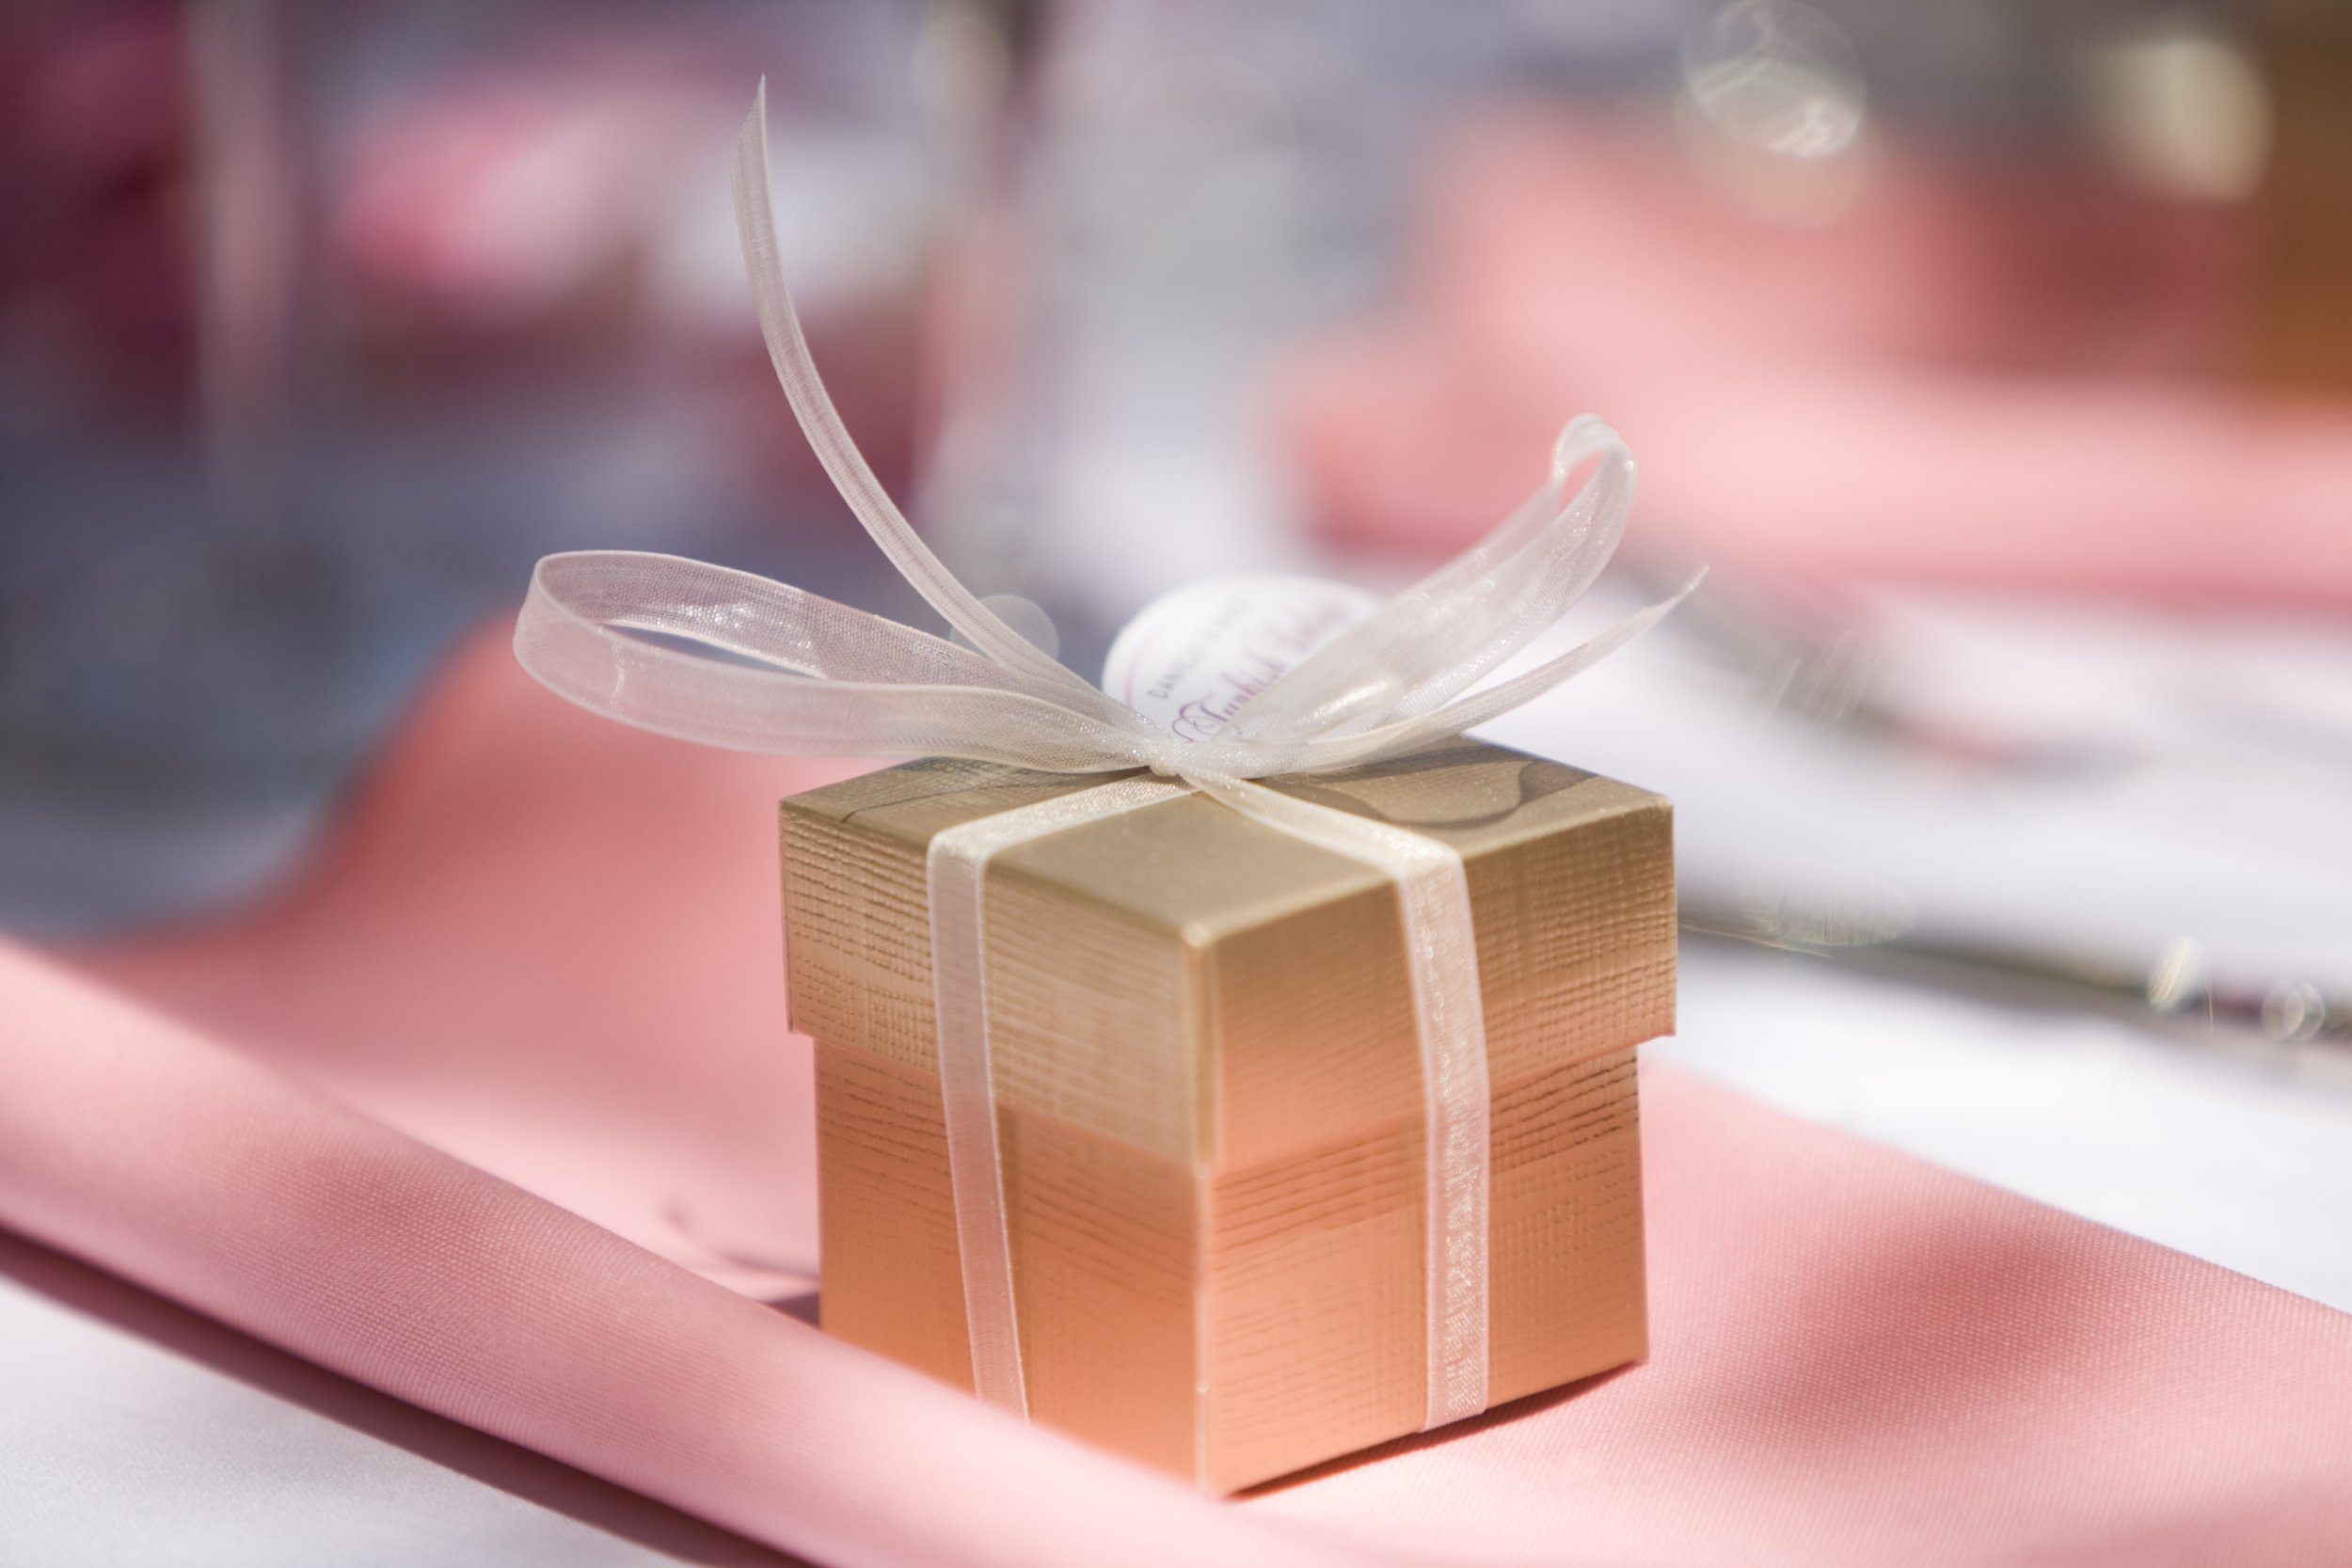 gold party favor gift box at wedding reception on top of pink napkin